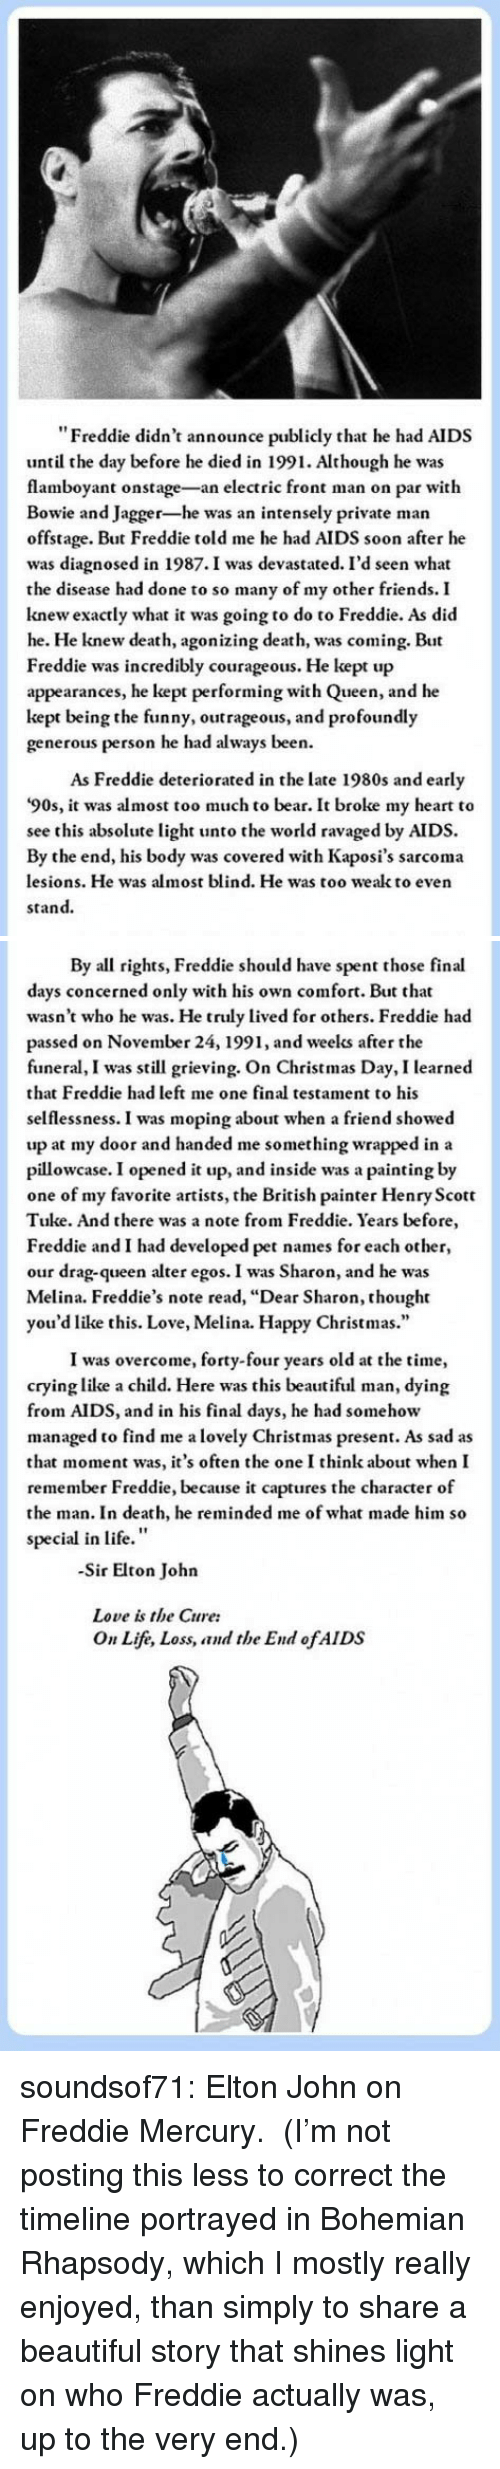 """selflessness: """"Freddie didn't announce publicly that he had AIDS  until the day before he died in 1991. Although he was  flamboyant onstage-an electric front man on par with  Bowie and Jagger-he was an intensely private man  offstage. But Freddie told me he had AIDS soon after he  was diagnosed in 1987.I was devastated. I'd seen what  the disease had done to so many of my other friends. I  knew exactly what it was going to do to Freddie. As did  he. He knew death, agonizing death, was coming. But  Freddie was incredibly courageous. He kept up  appearances, he kept performing with Queen, and he  kept being the funny, outrageous, and profoundly  generous person he had always been.  As Freddie deteriorated in the late 1980s and early  '90s, it was almost too much to bear. It broke my heart to  see this absolute light unto the world ravaged by AIDS.  By the end, his body was covered with Kaposi's sarcoma  lesions. He was almost blind. He was too wealk to even  stand.   By all rights, Freddie should have spent those final  days concerned only with his own comfort. But that  wasn't who he was. He truly lived for others. Freddie had  passed on November 24, 1991, and weelks after the  funeral, I was still grieving. On Christmas Day, I learned  that Freddie had left me one final testament to his  selflessness. I was moping about when a friend showed  up at my door and handed me something wrapped in a  pillowcase. I opened it up, and inside was a painting by  one of my favorite artists, the British painter Henry Scott  Tuke. And there was a note from Freddie. Years before  Freddie and I had developed pet names for each other,  our drag-queen alter egos. I was Sharon, and he was  Melina. Freddie's note read, """"Dear Sharon, thought  you'd like this. Love, Melina. Happy Christmas.""""  I was overcome, forty-four years old at the time,  crying like a child. Here was this beautiful man, dying  from AIDS, and in his final days, he had somehow  managed to find me a lovely Christmas pres"""